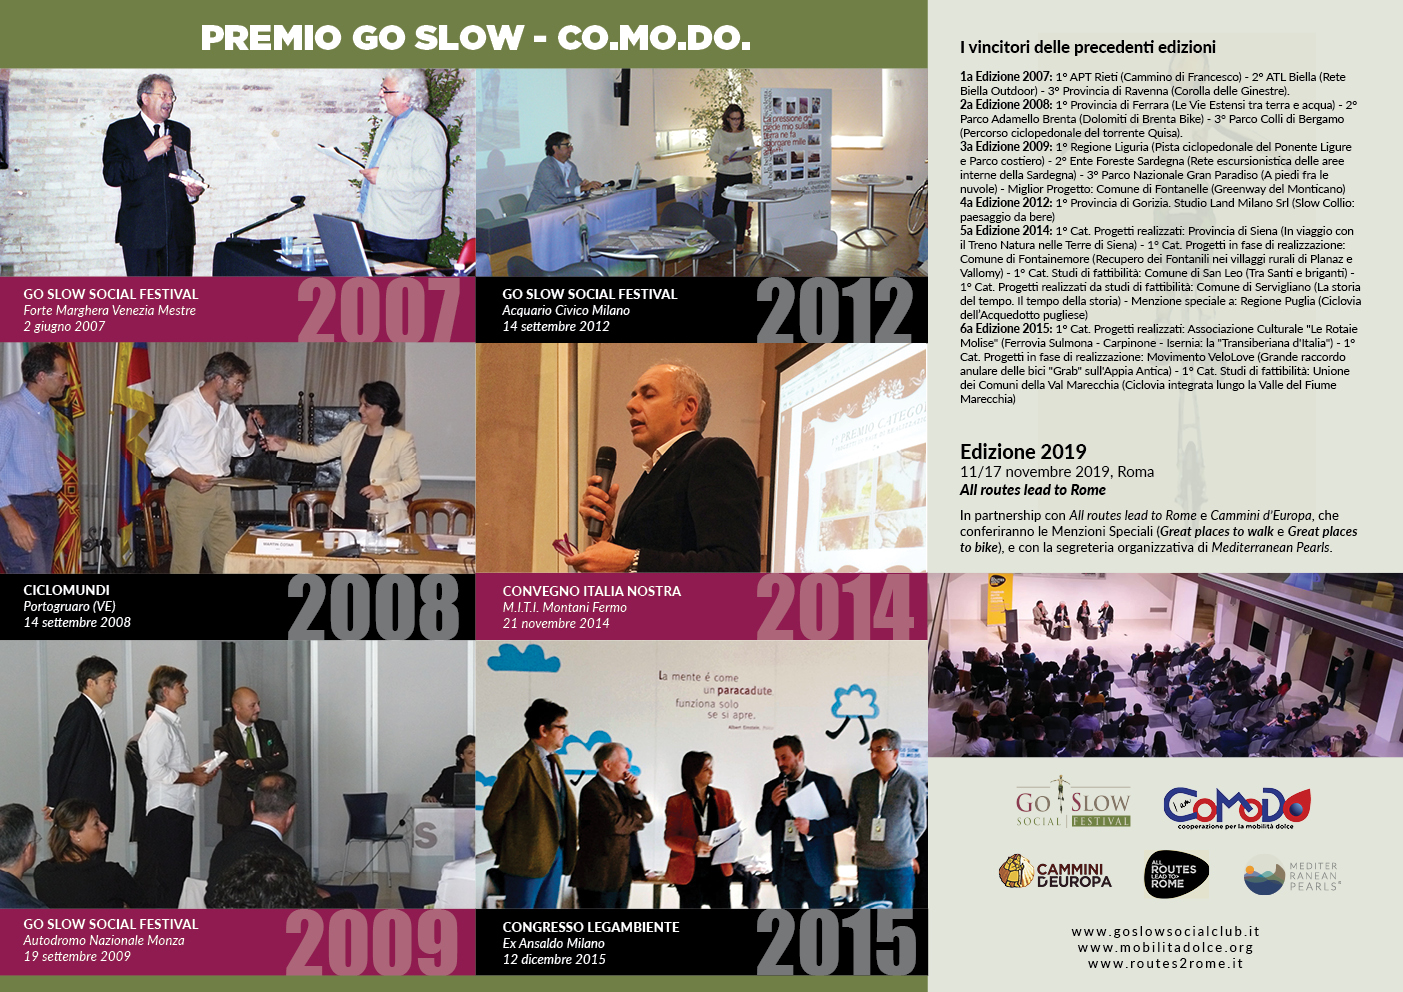 Storico Premio Go Slow-Co.Mo.Do.